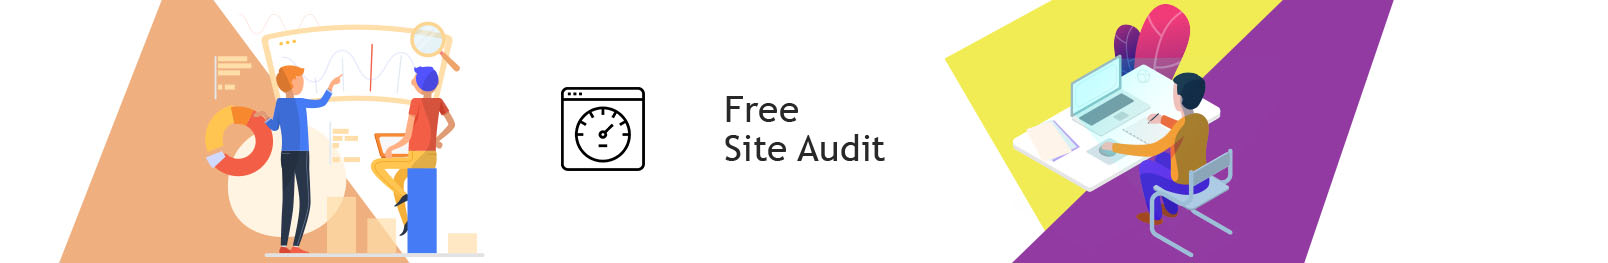 Site audit. Order an audit of the site. Order a technical audit of the site.